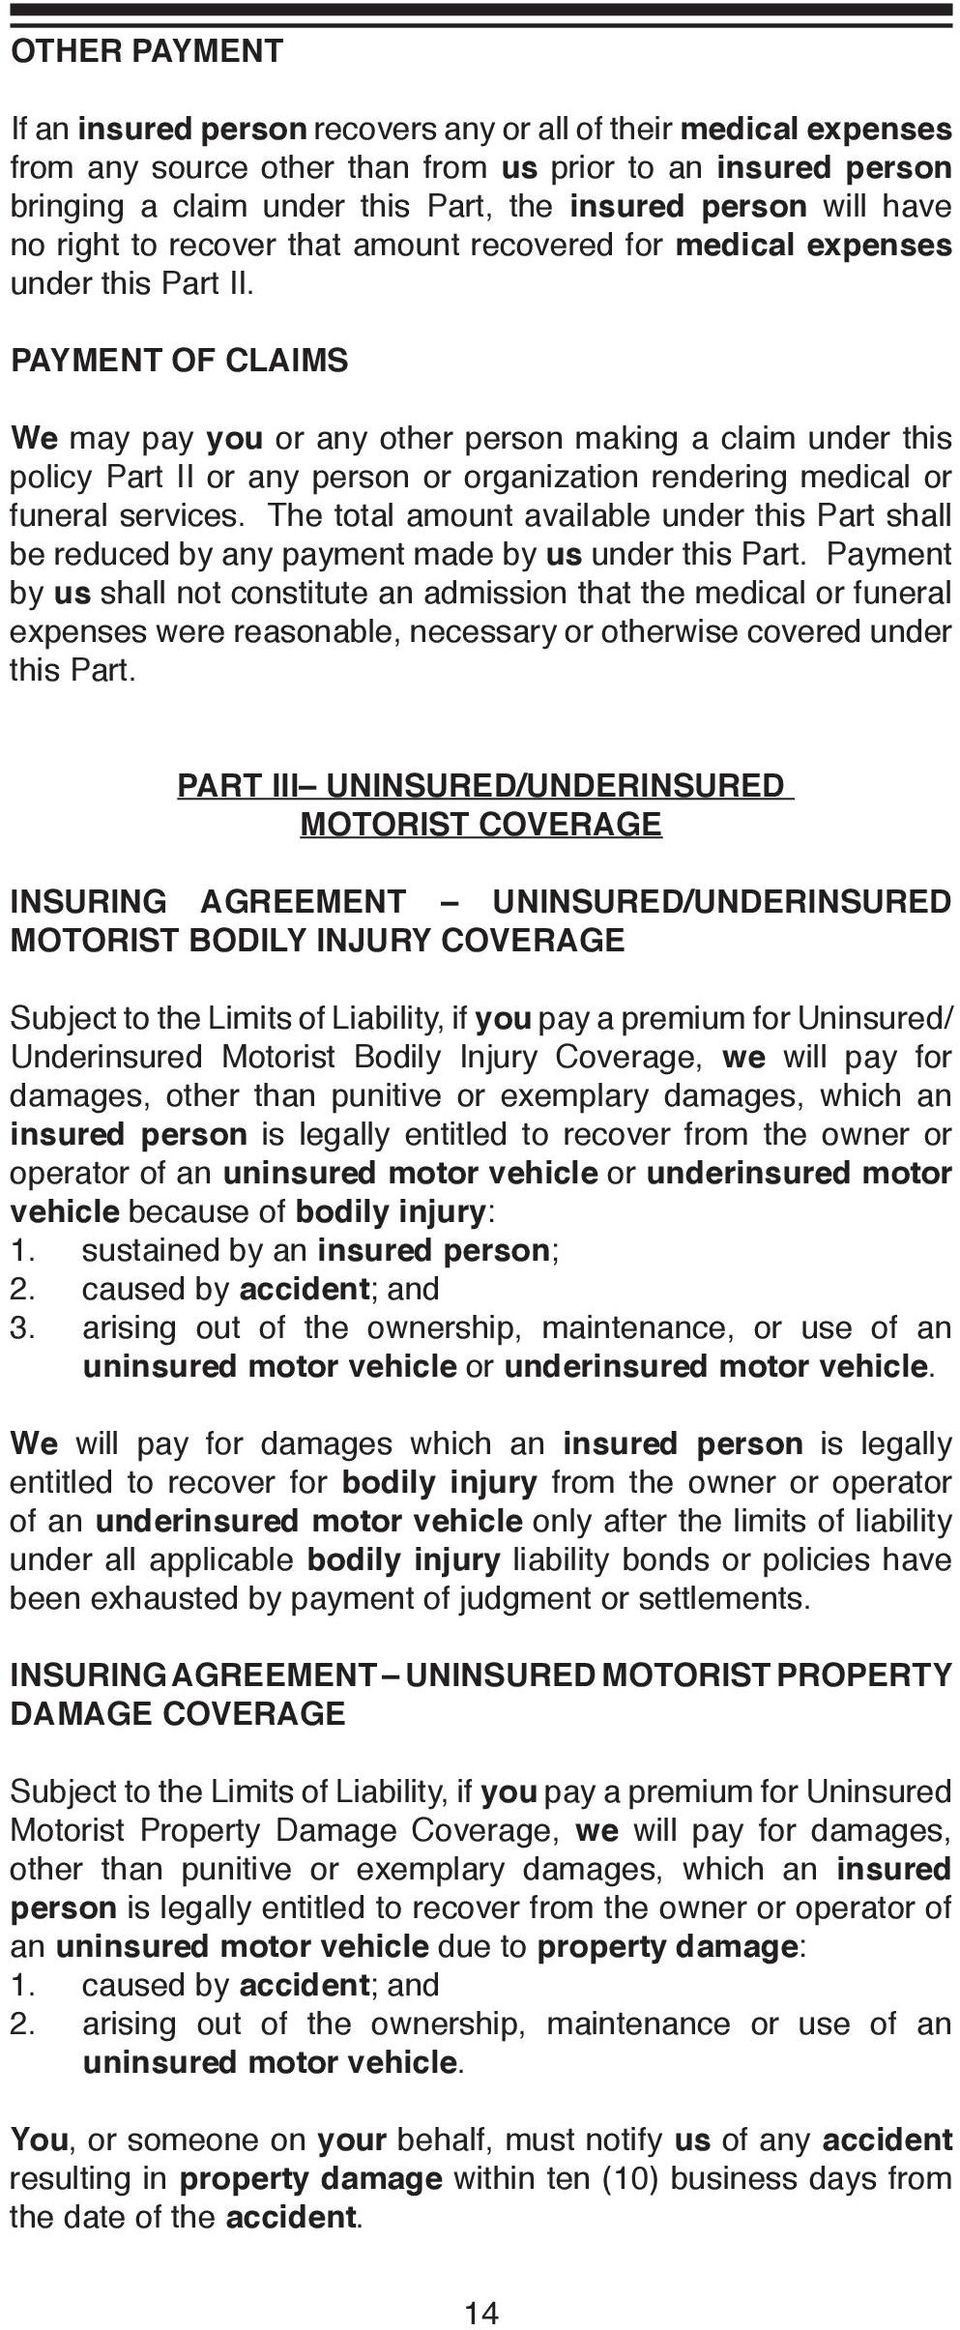 PAYMENT OF CLAIMS We may pay you or any other person making a claim under this policy Part II or any person or organization rendering medical or funeral services.